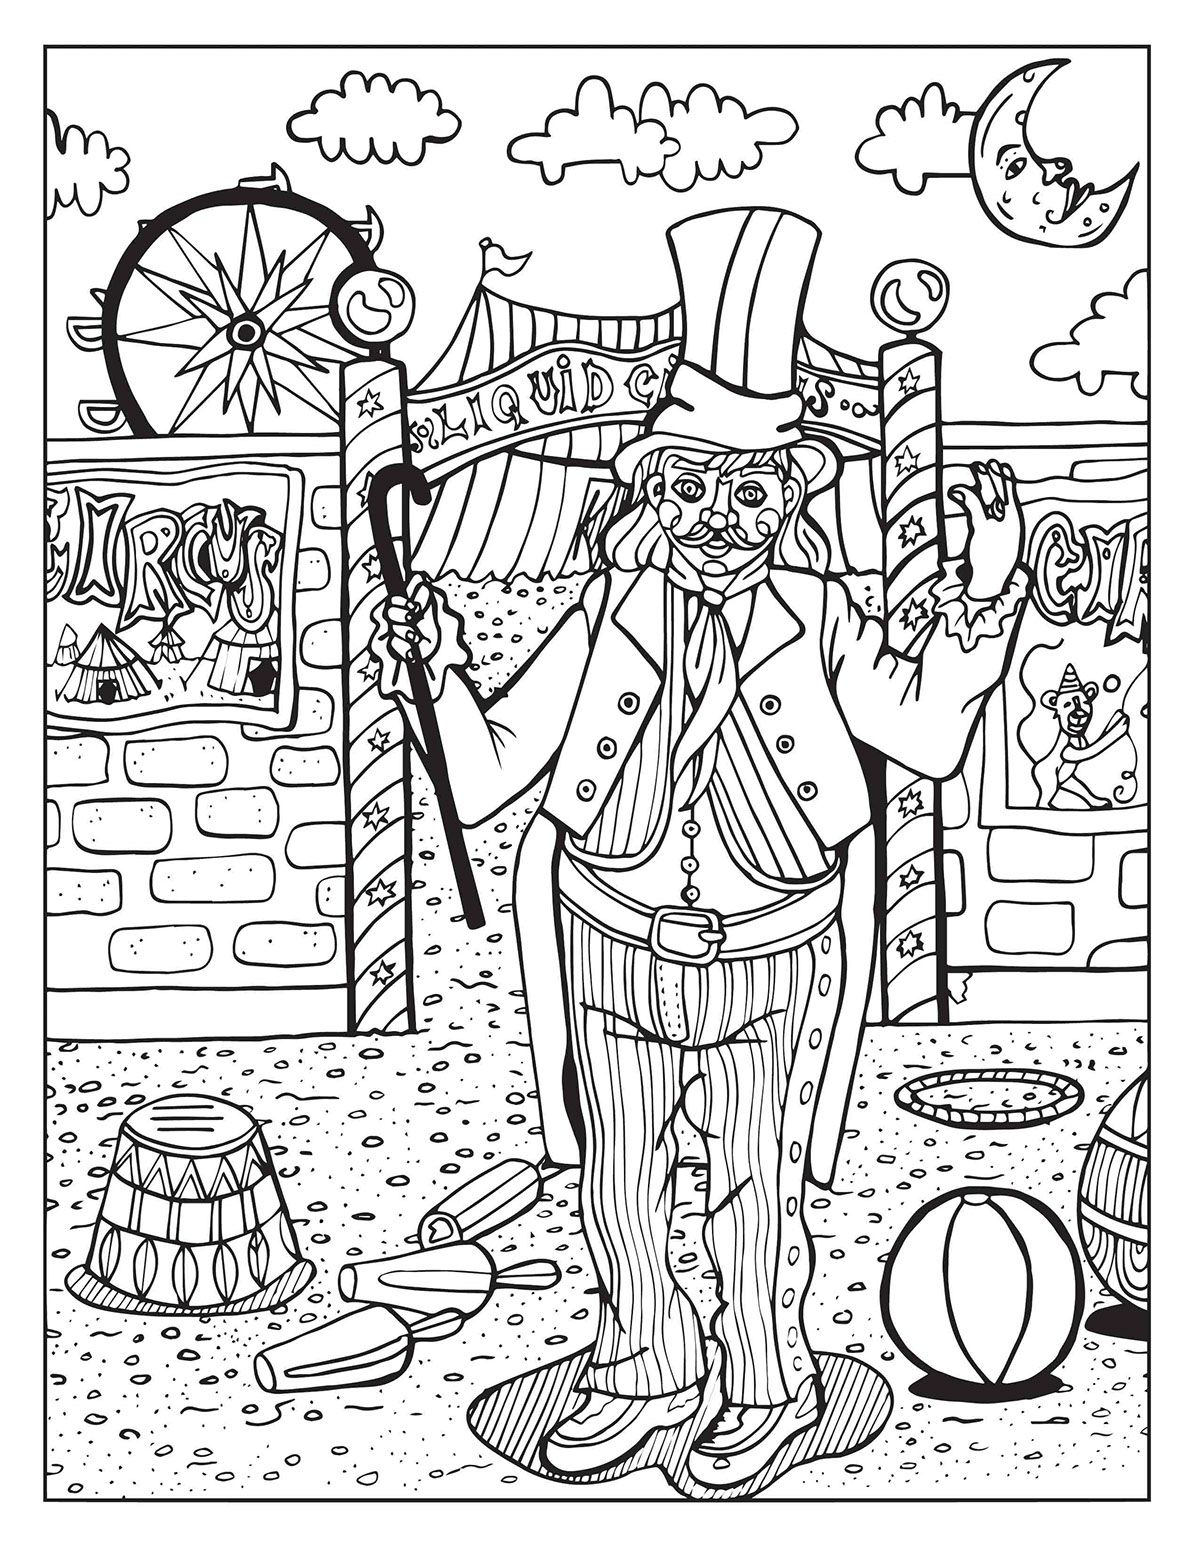 A Day At The Circus Coloring Page On Behance Coloring Books Coloring Book Pages Coloring Pages